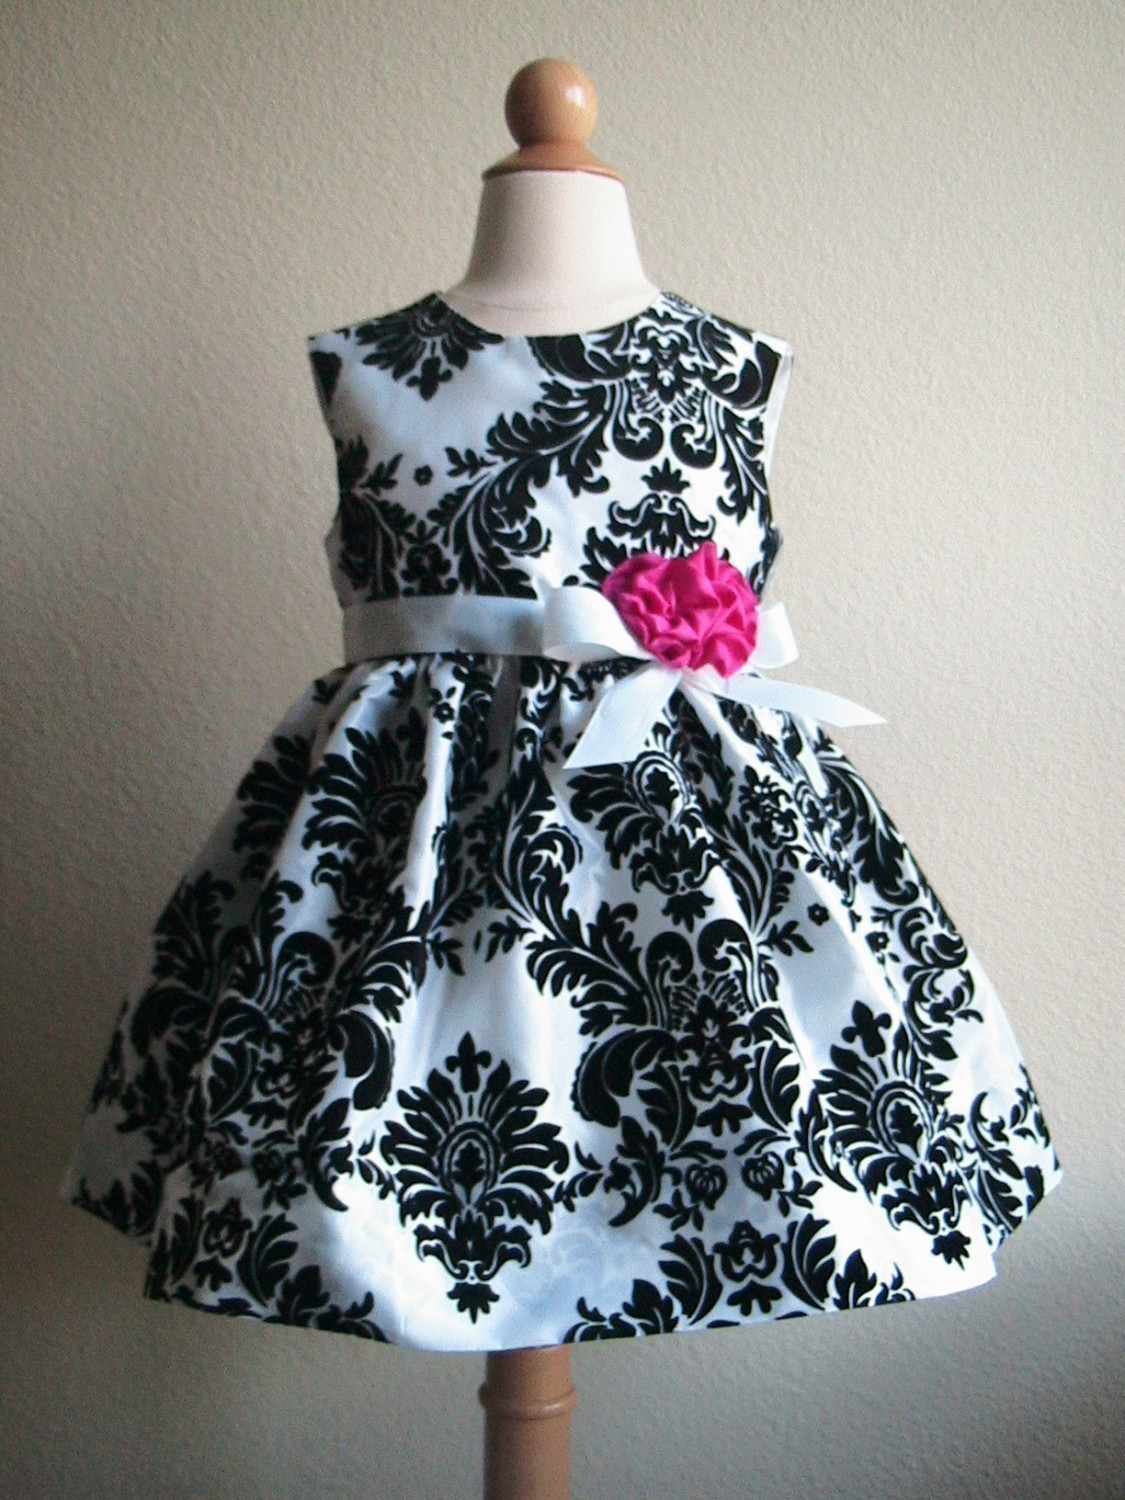 Damask quinceanera decorations on pinterest damasks for Black floral dress to a wedding